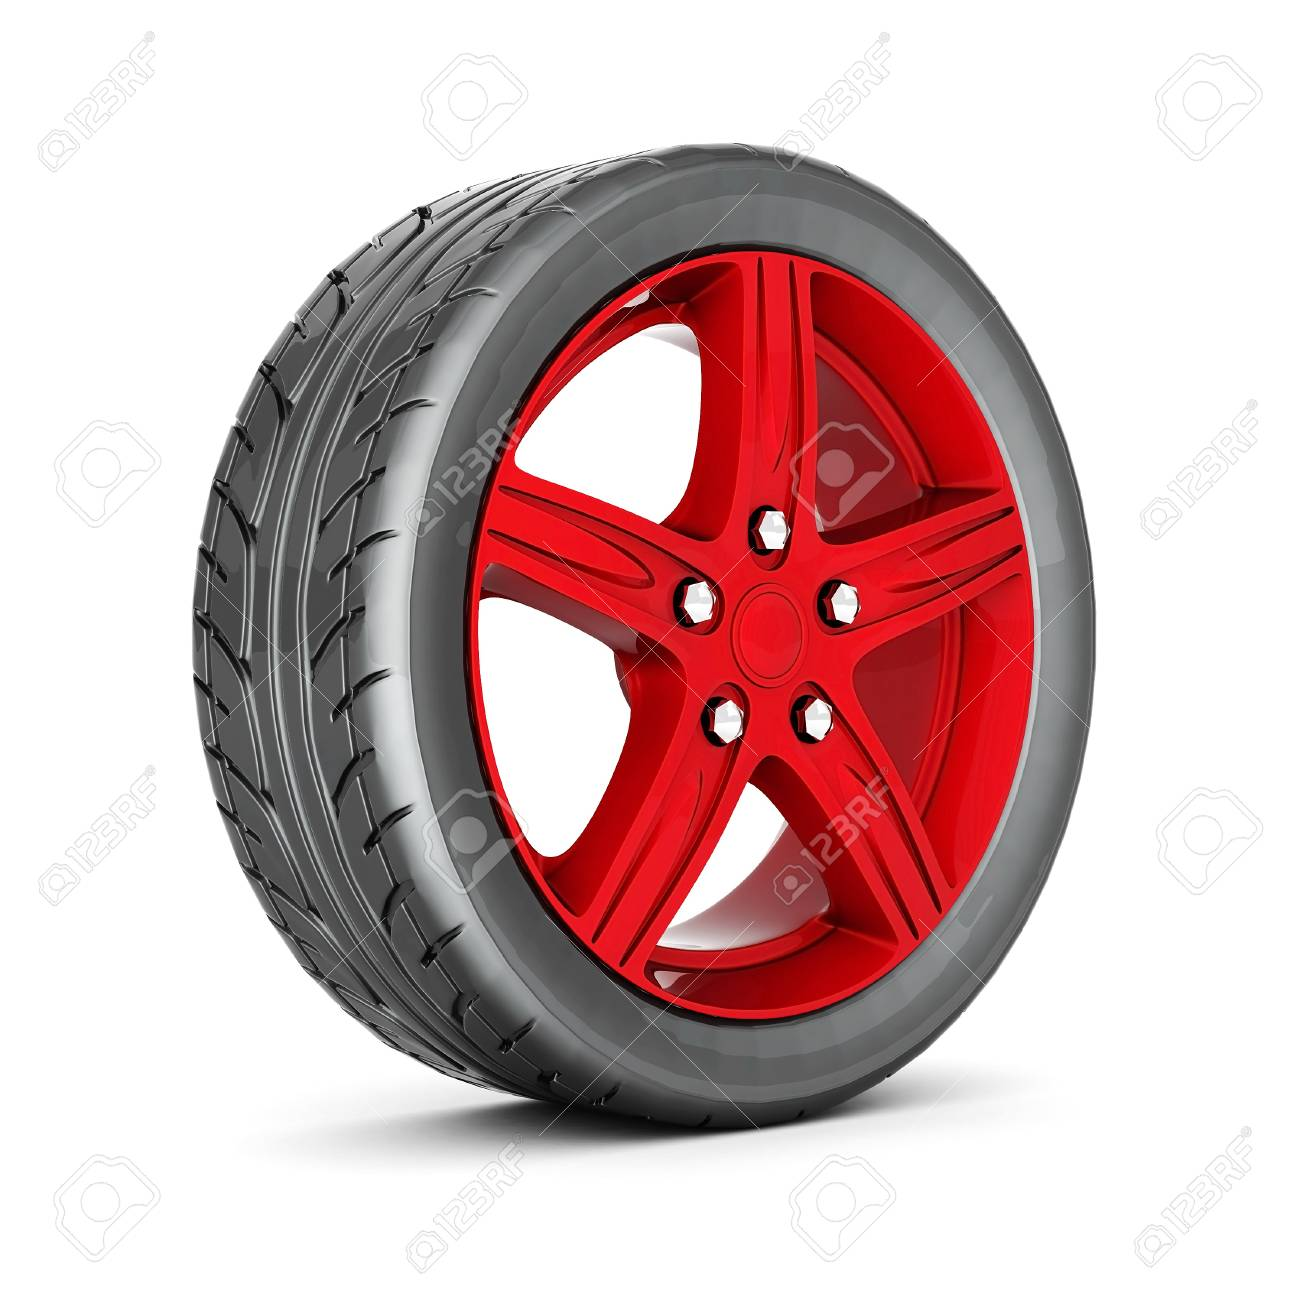 black and red sports wheel on a white background Stock Photo - 21772612